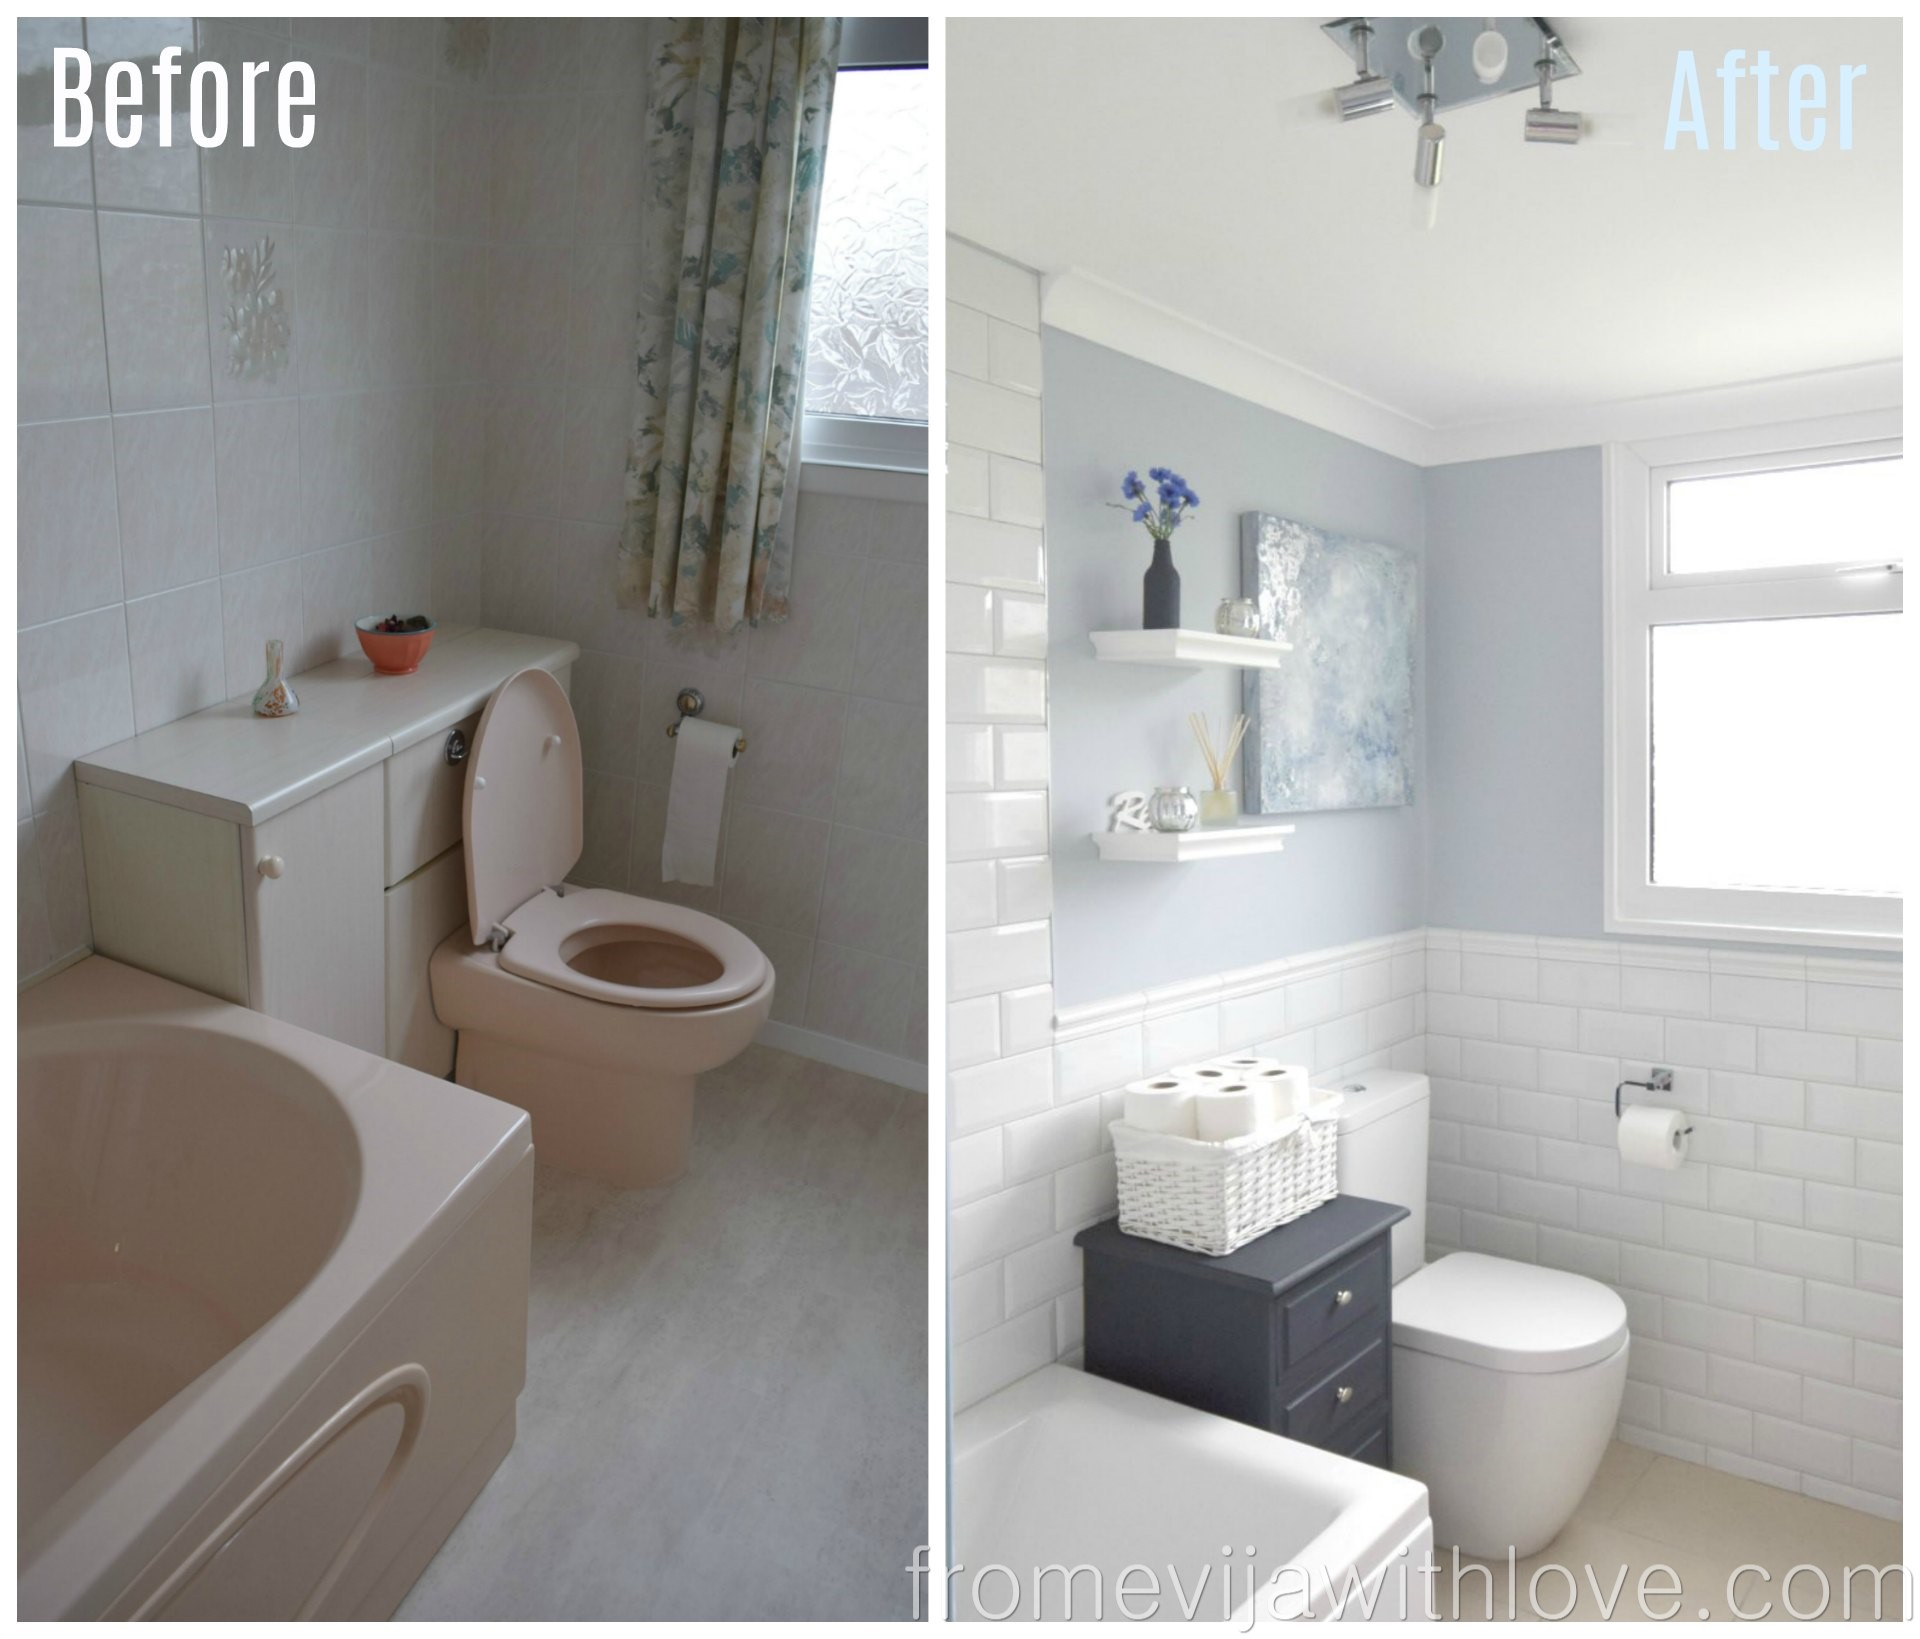 Bathroom Makeover - Part 2 - The Big Reveal! - From Evija with Love